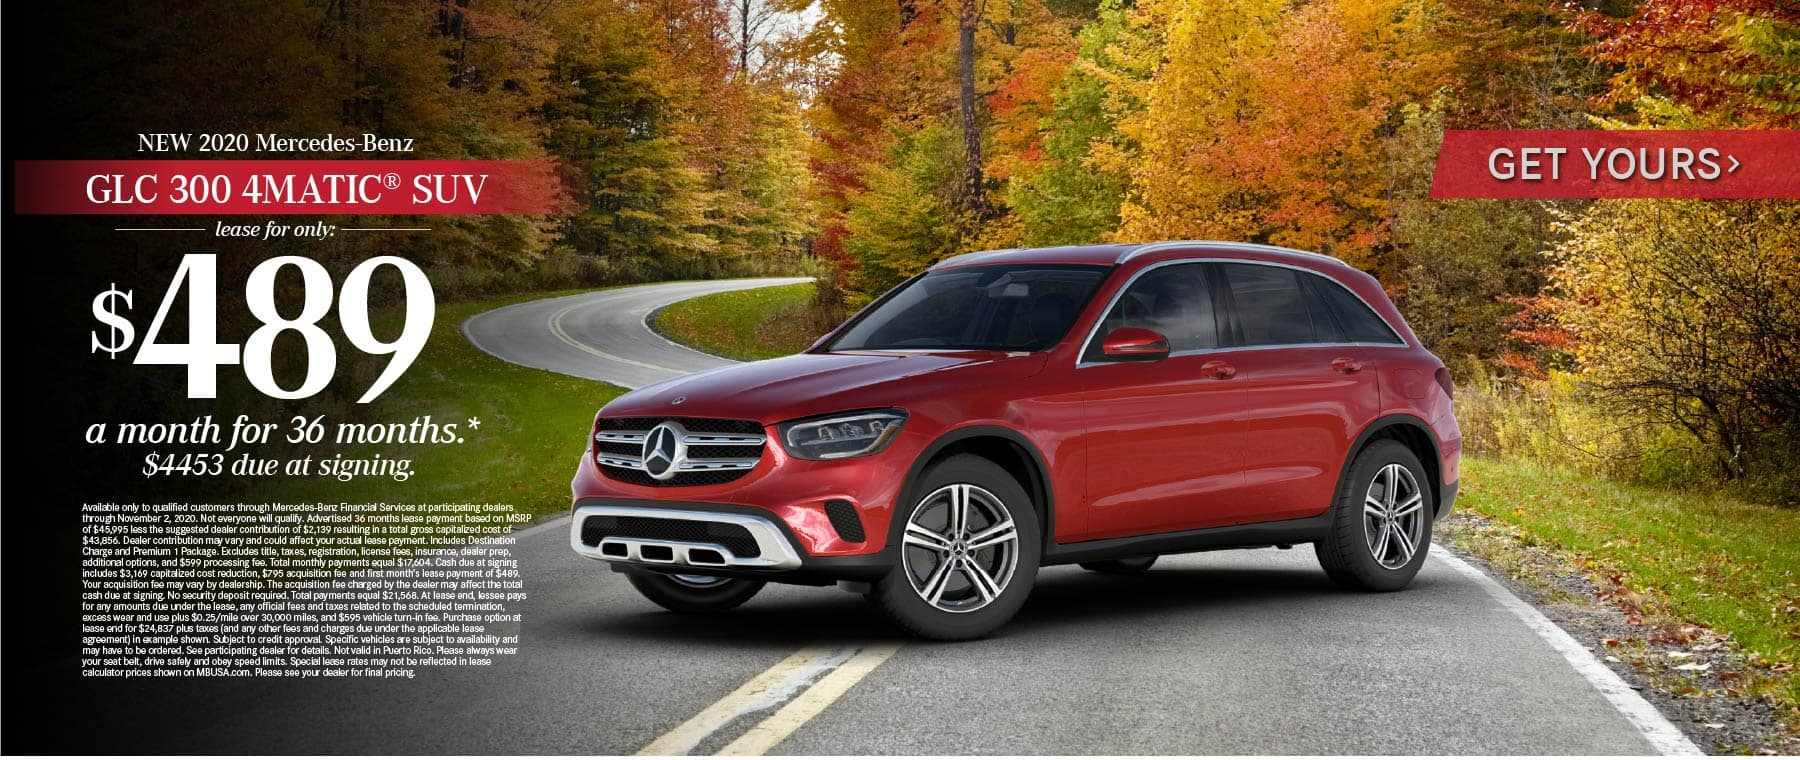 2020 Mercedes Benz GLC 300 4MATIC SUV lease for only: $489 a month for 36 months* Get Yours